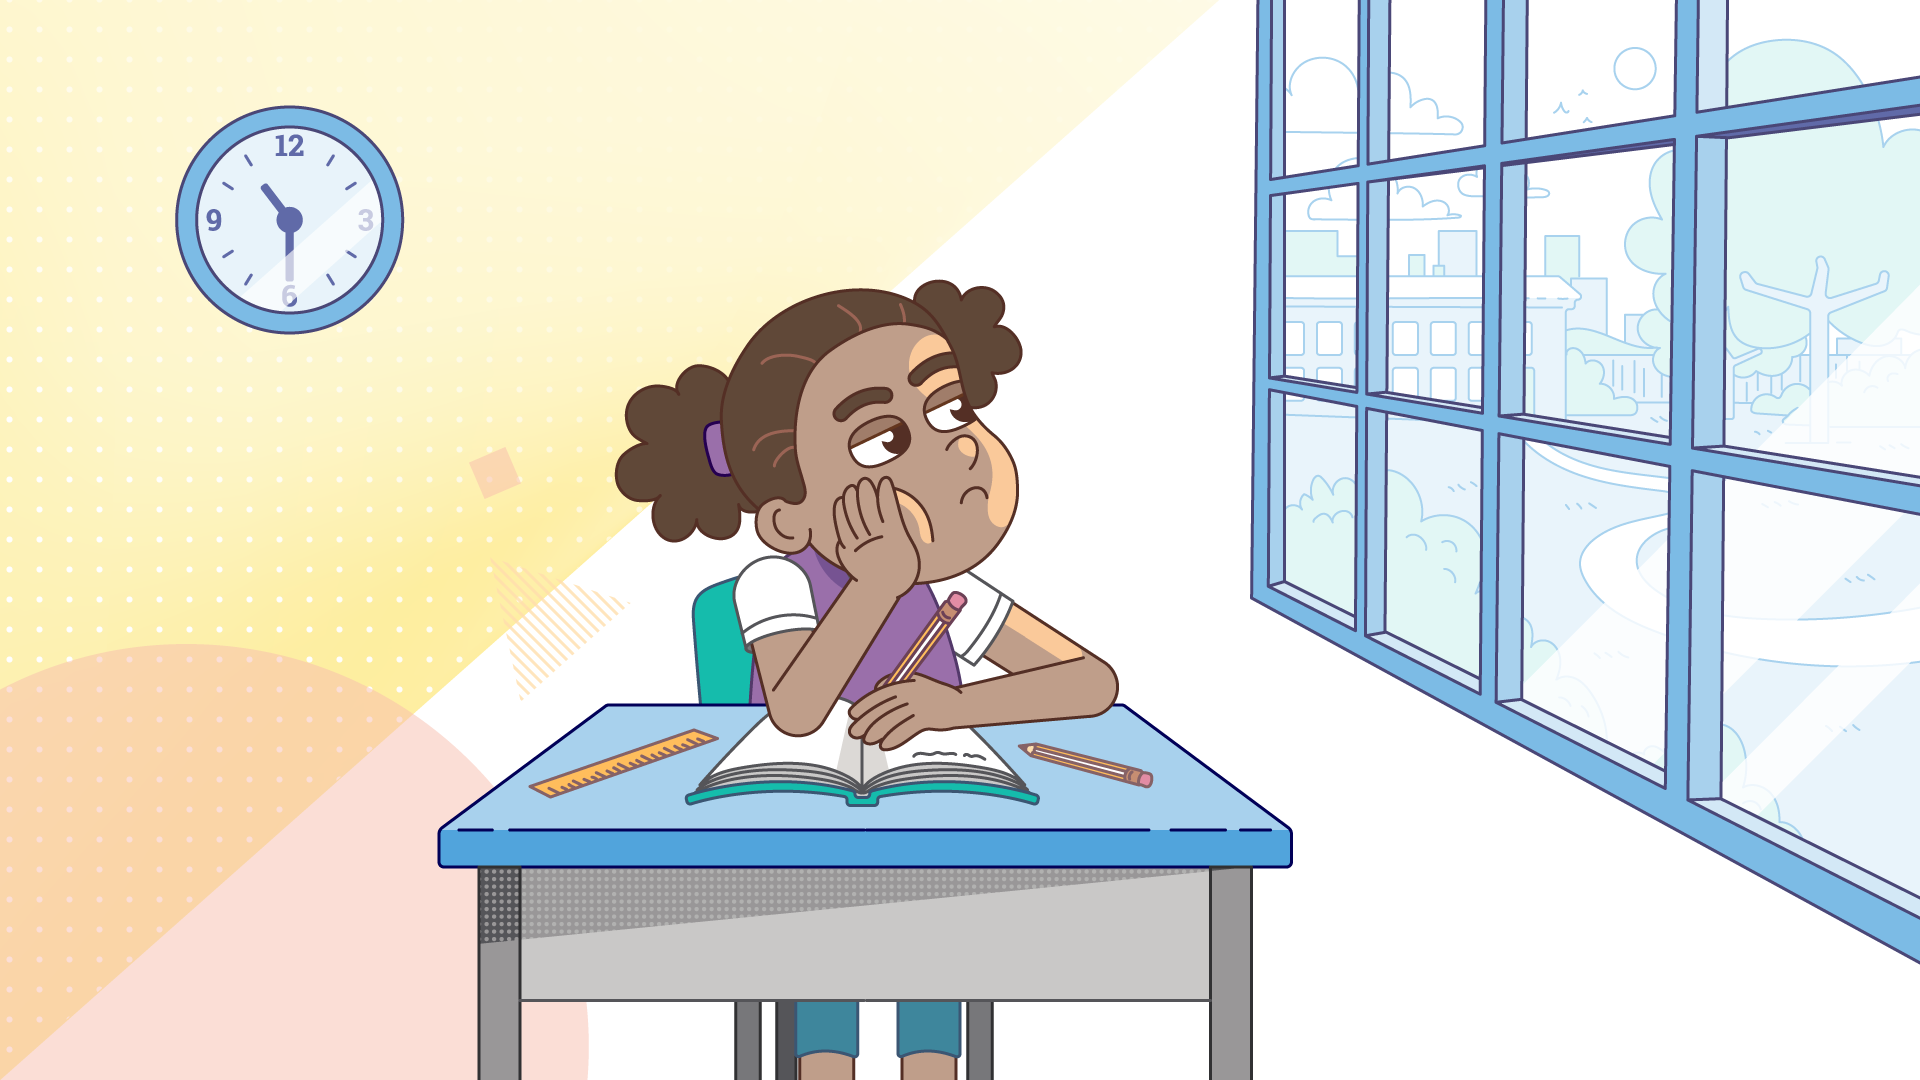 image of student at a desk in a classroom gazing out of window